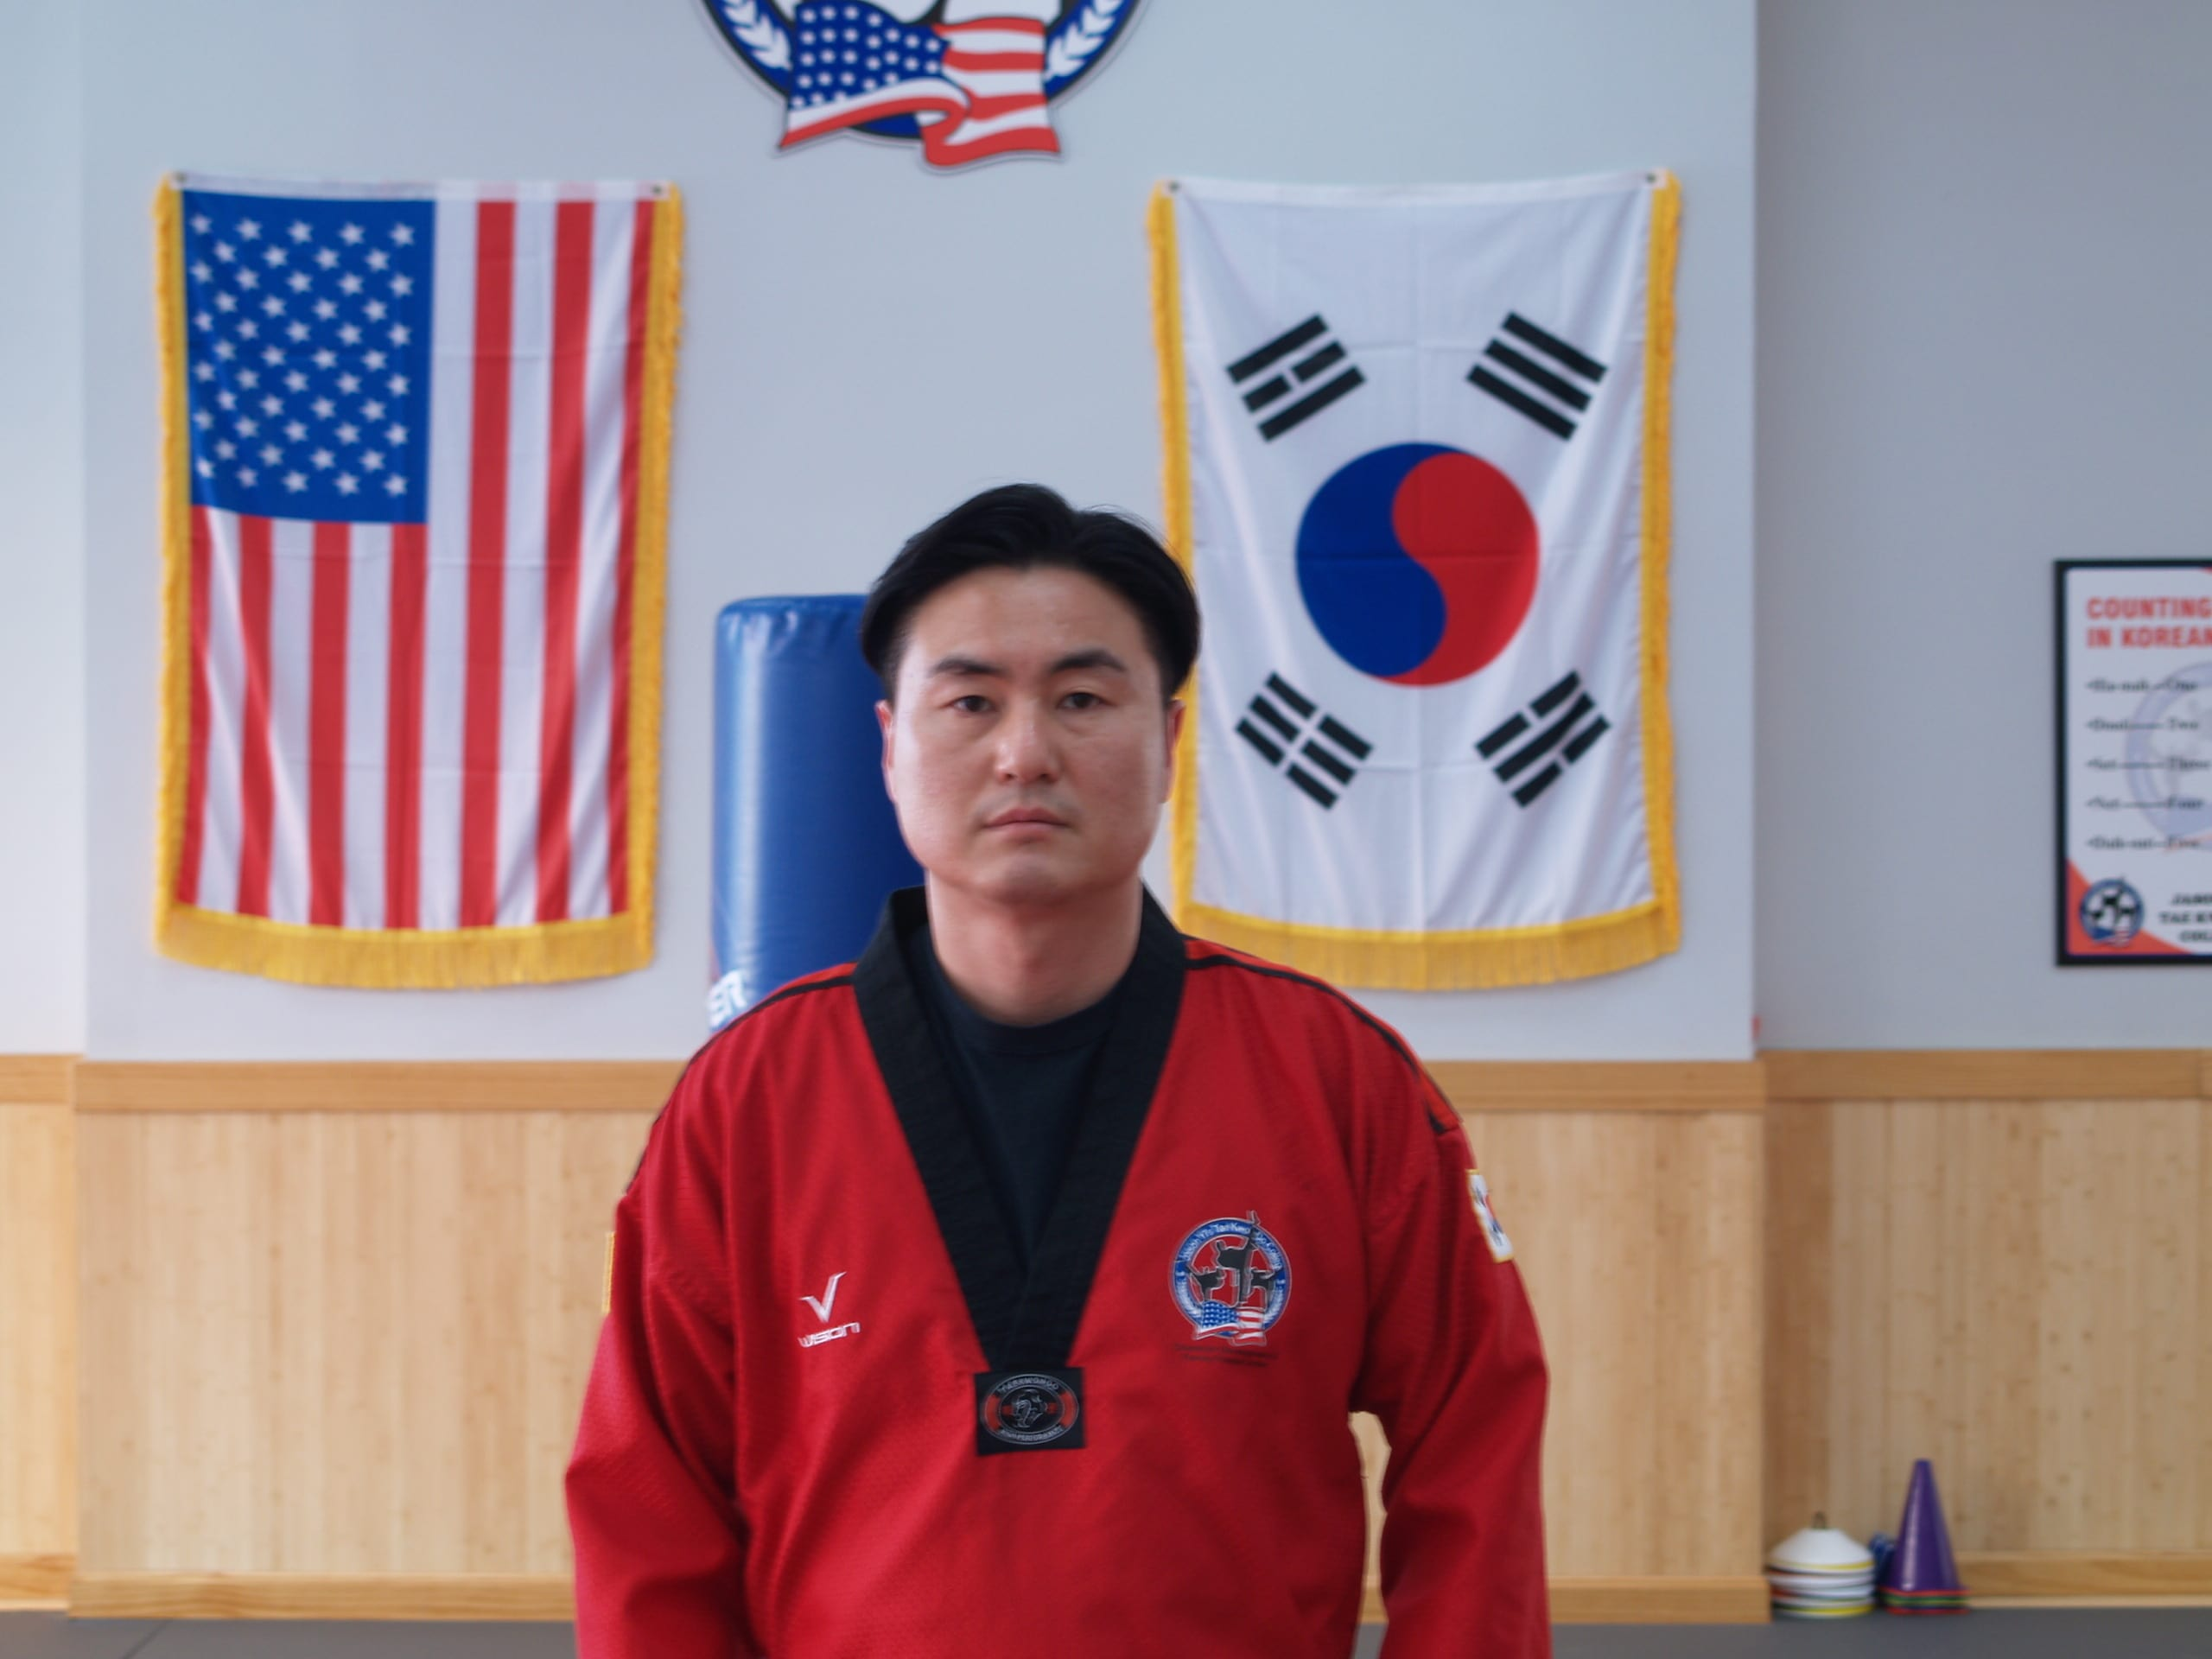 Mr Kang in Woodbridge - Life Champ Martial Arts